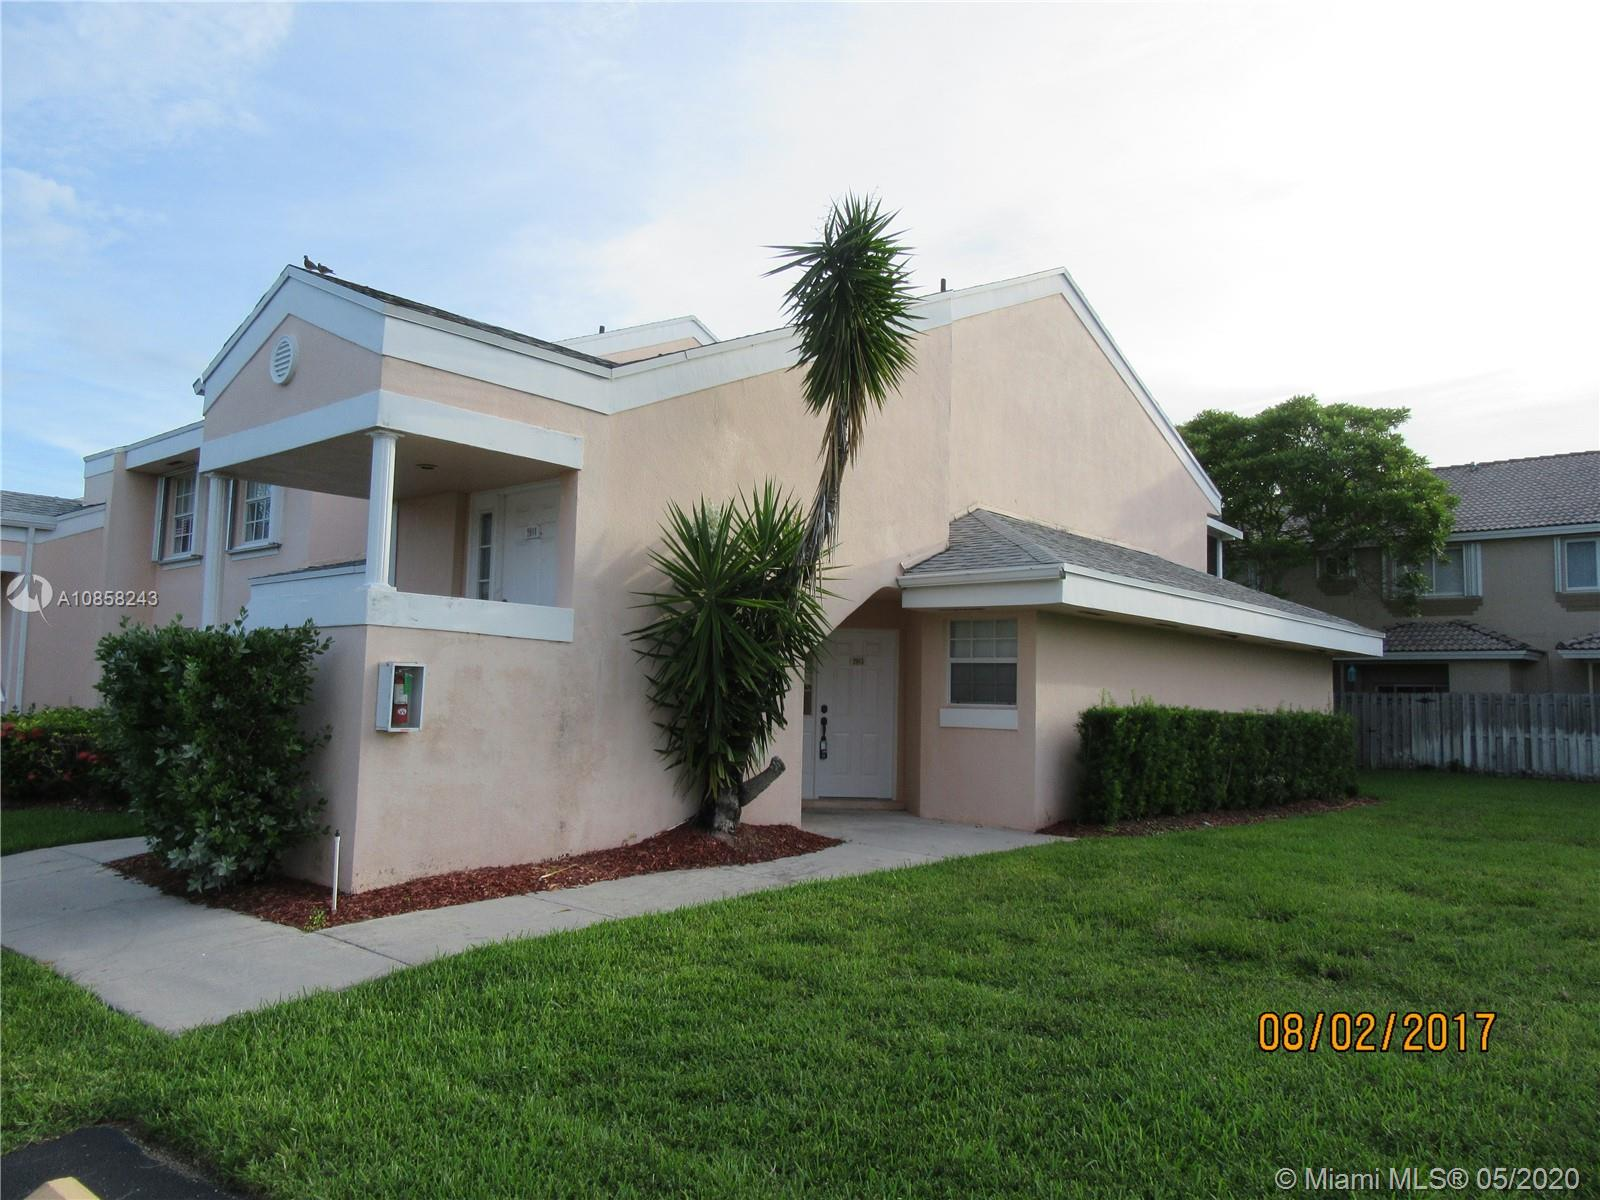 2013 SE 26th Ln #107, Homestead, FL 33035 - Homestead, FL real estate listing